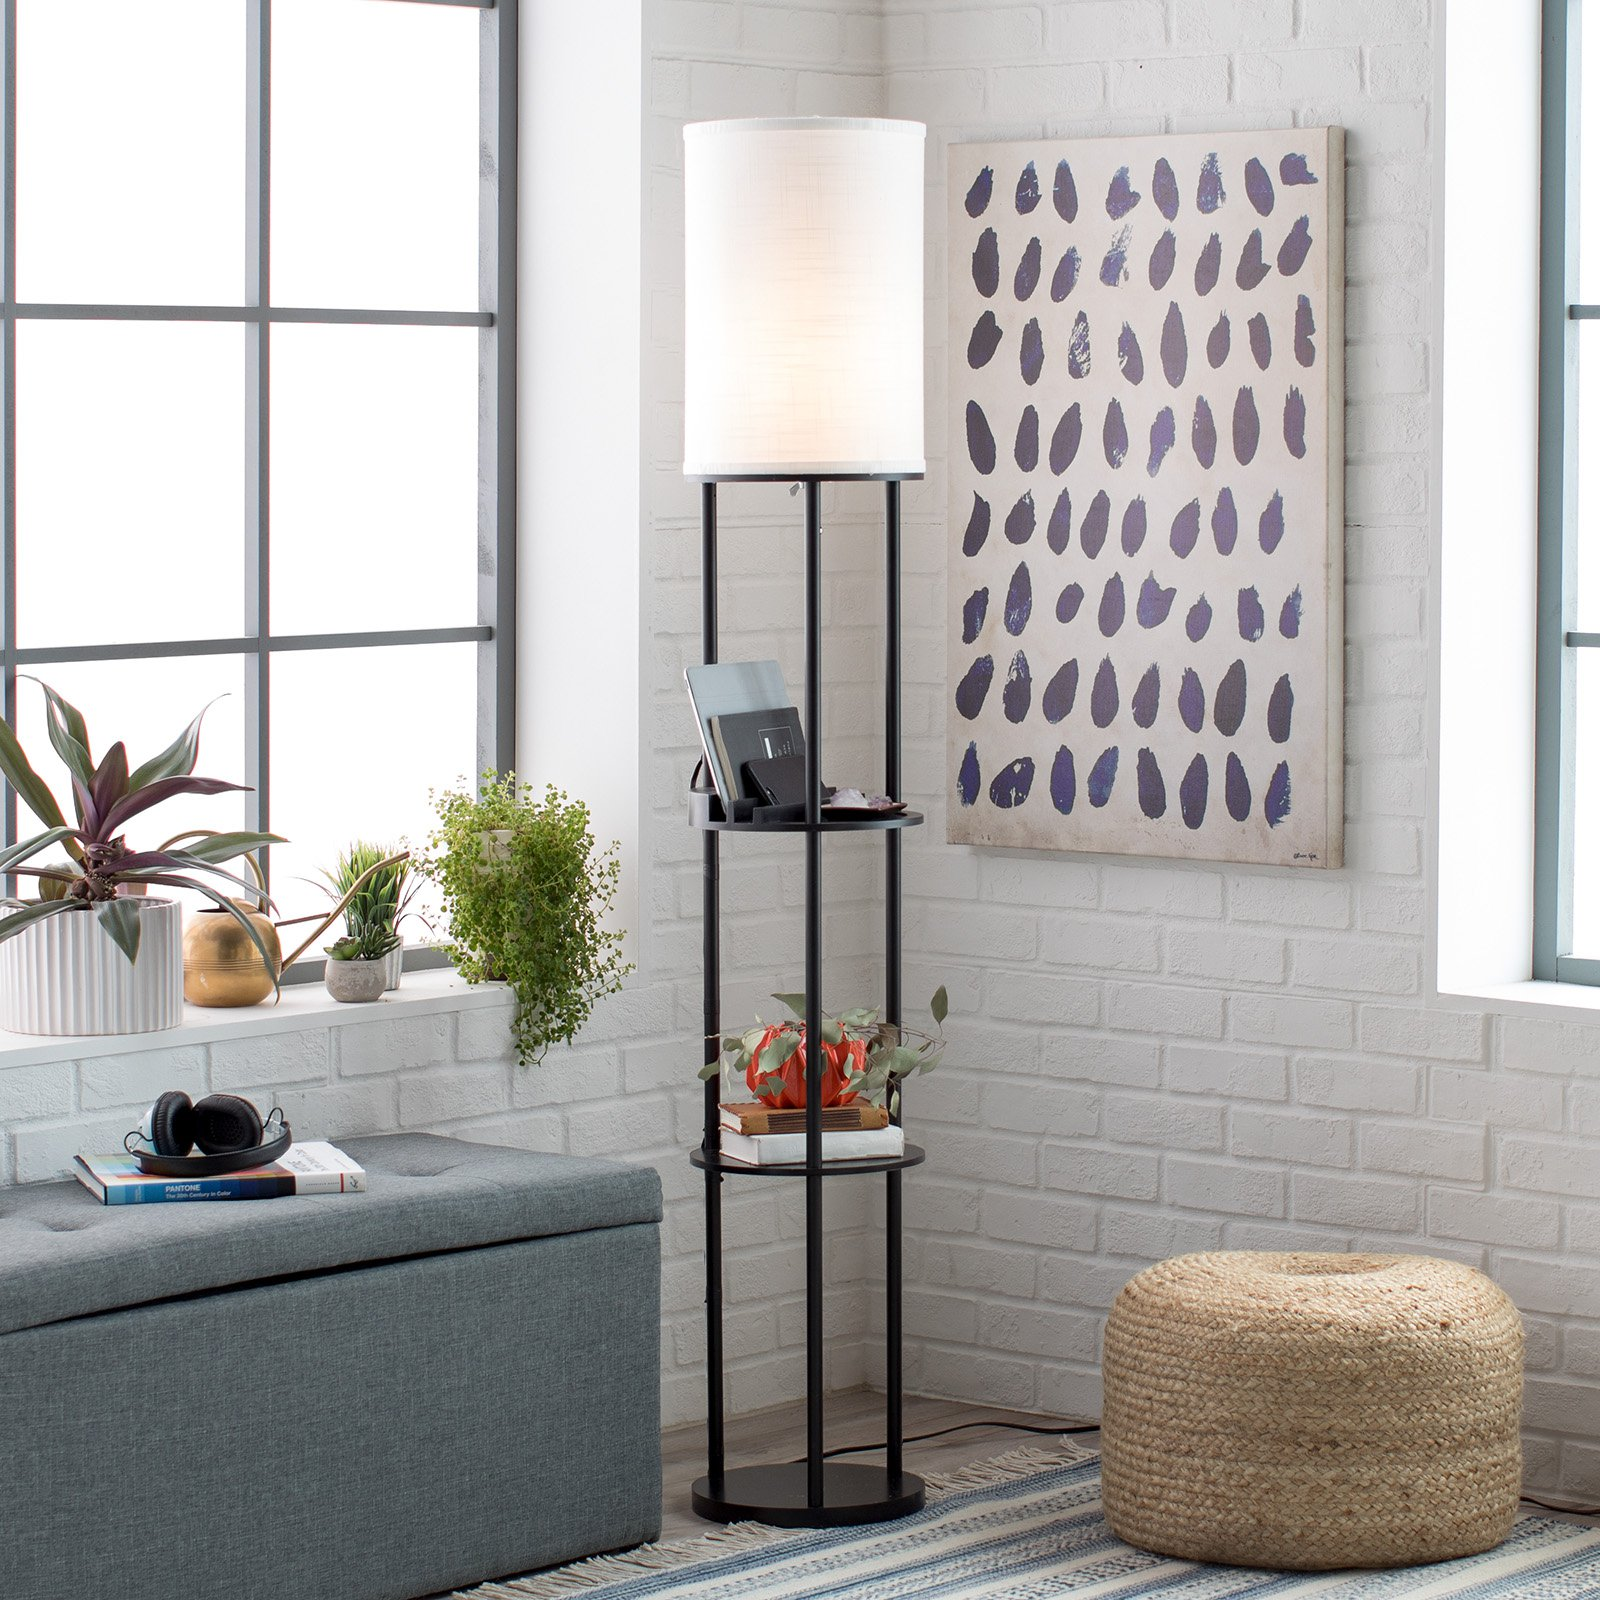 Adesso Charging Station Shelf Floor Lamp